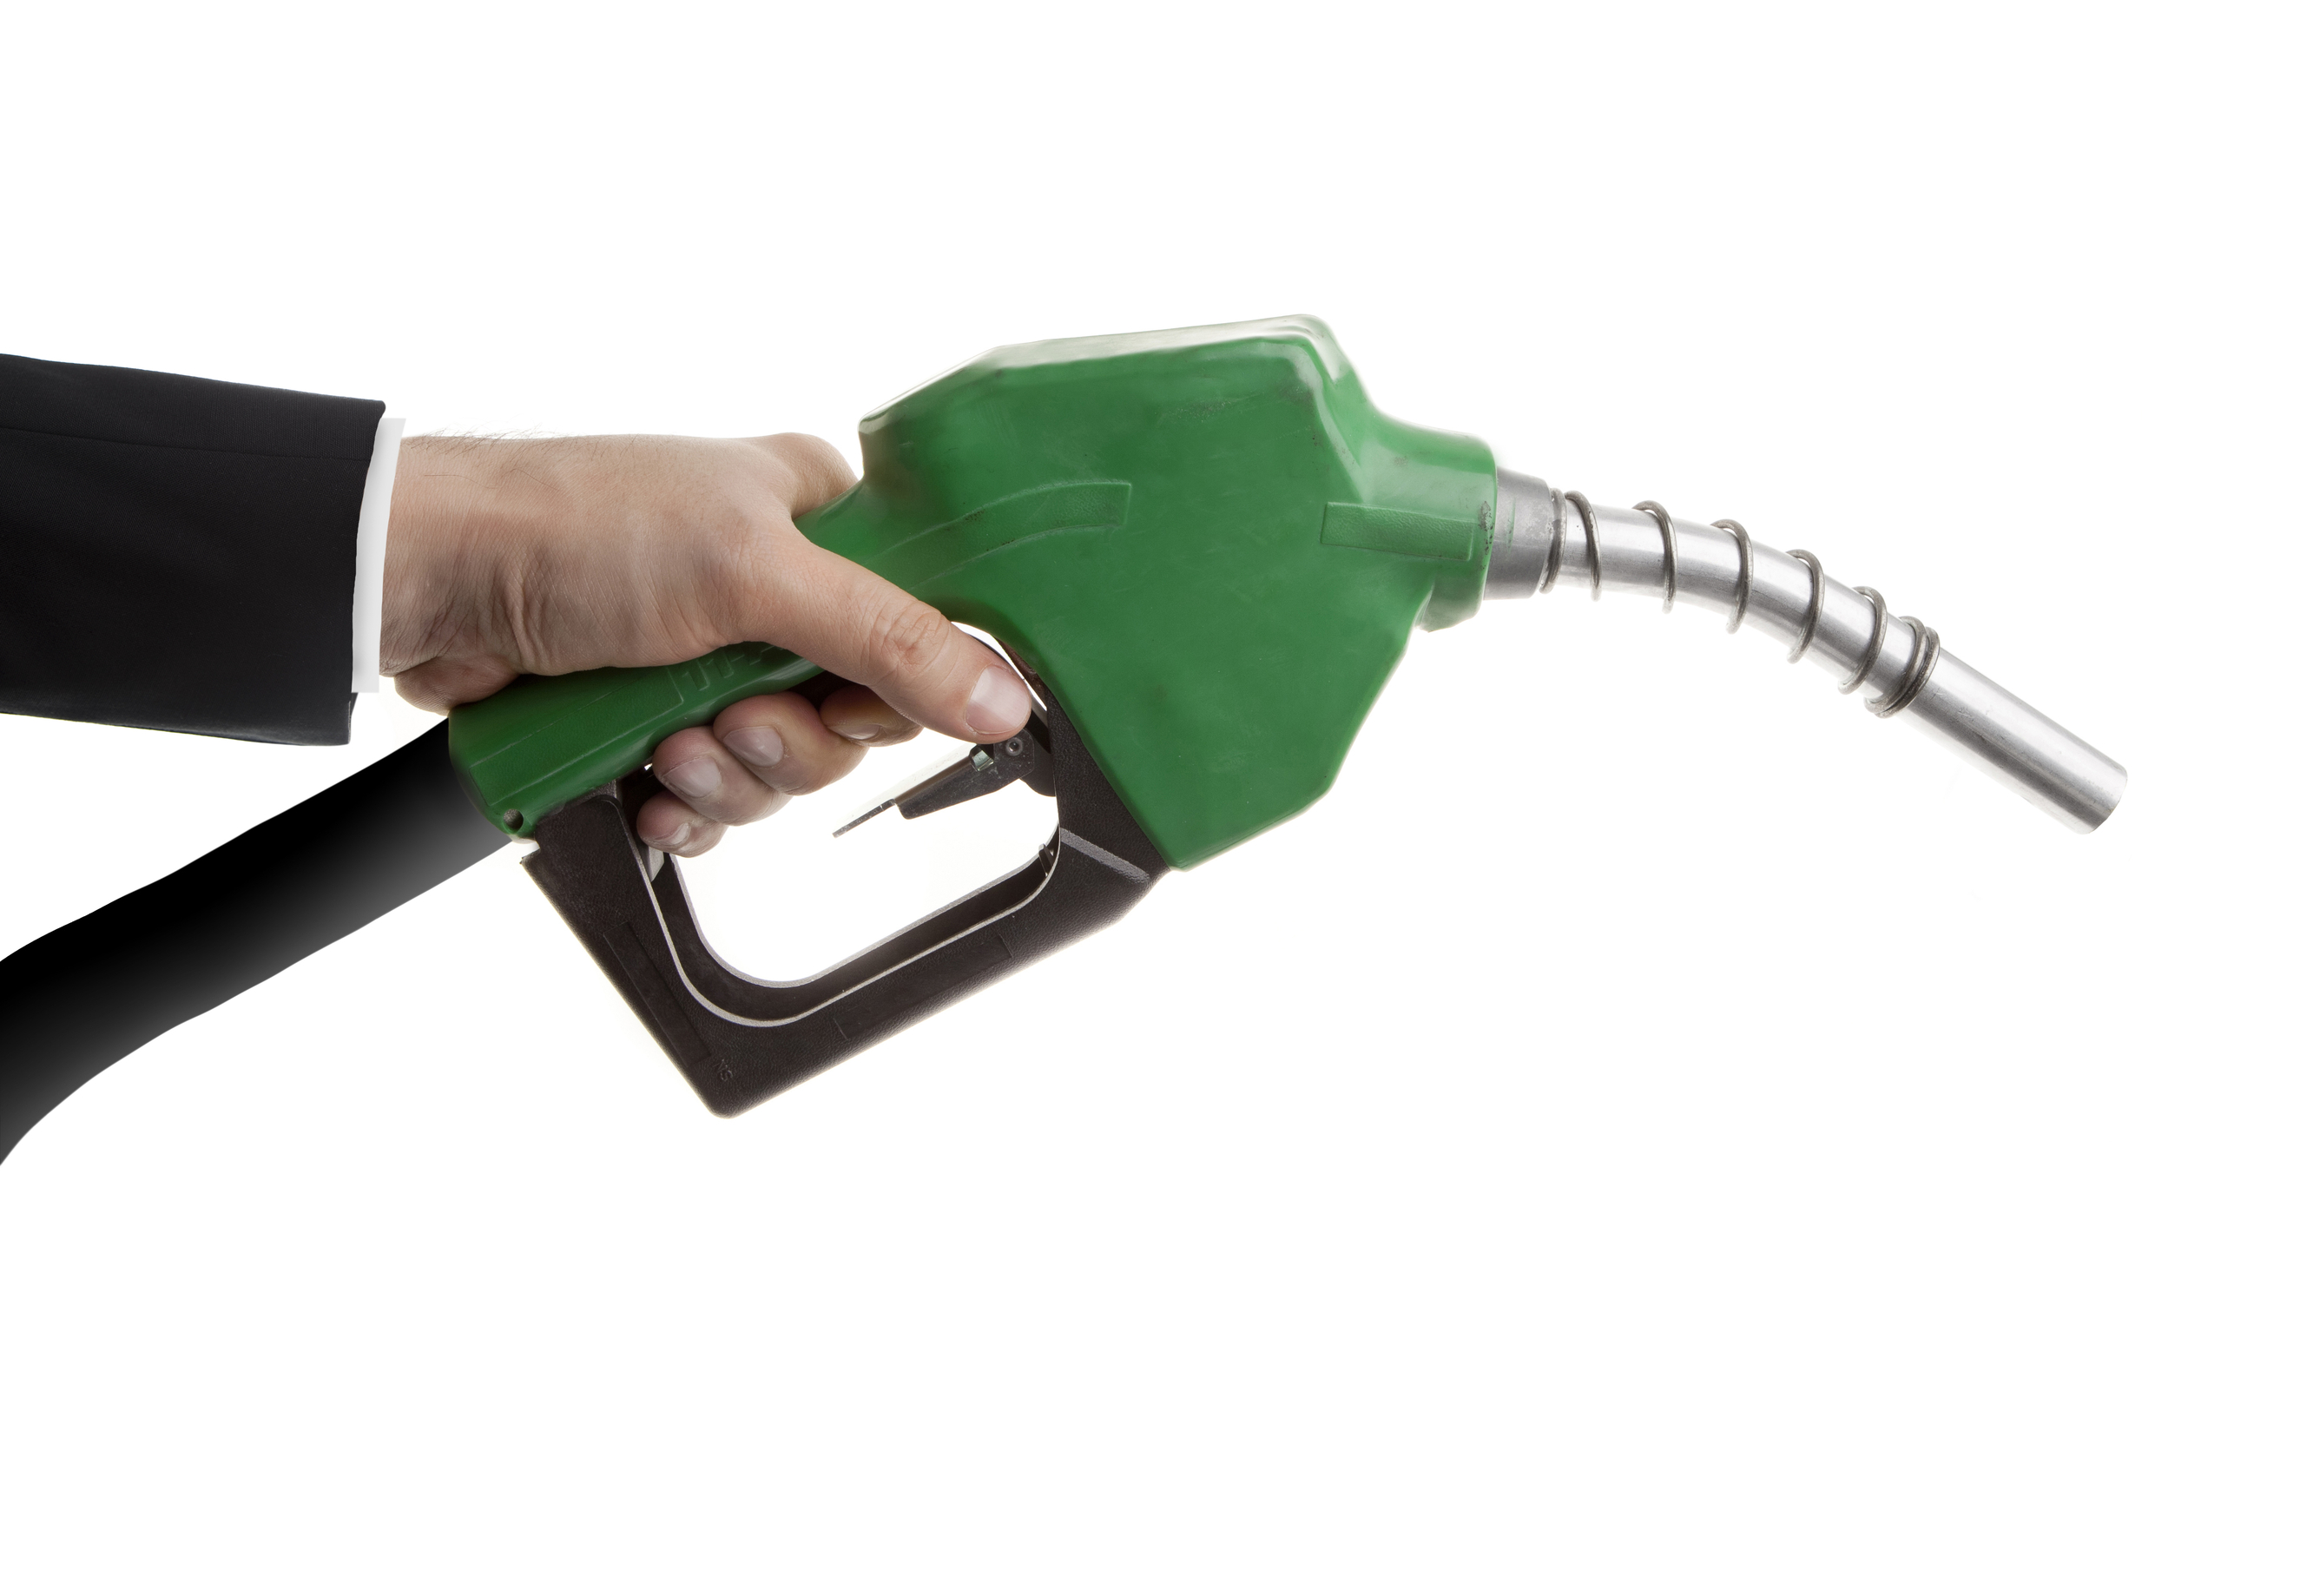 Gas Nozzle in Hand